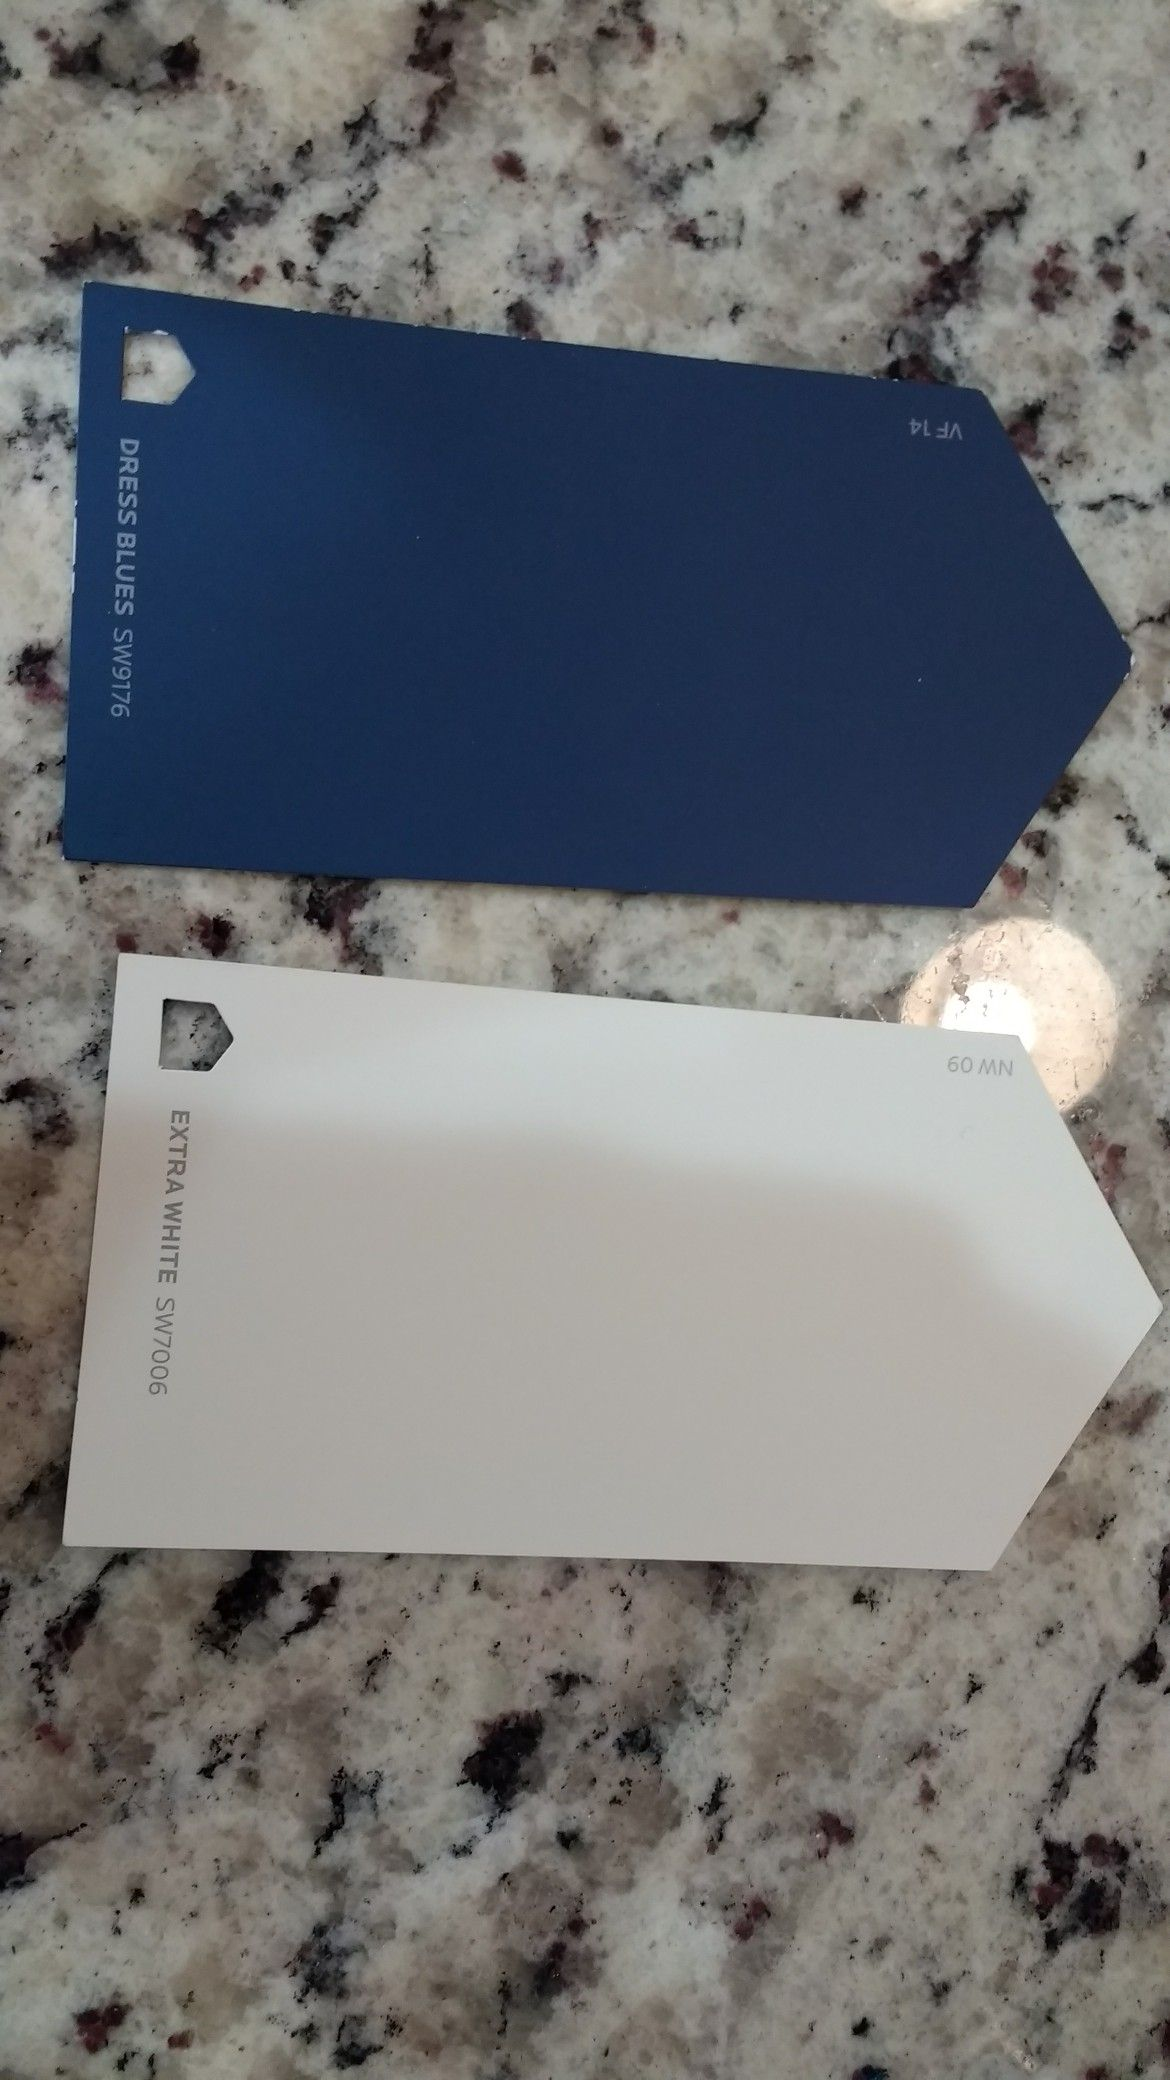 Sherwin Williams Dress Blues And Extra White Sherwin Williams Paint Colors Sherwin Williams Blue Blue Wall Colors [ 2080 x 1170 Pixel ]